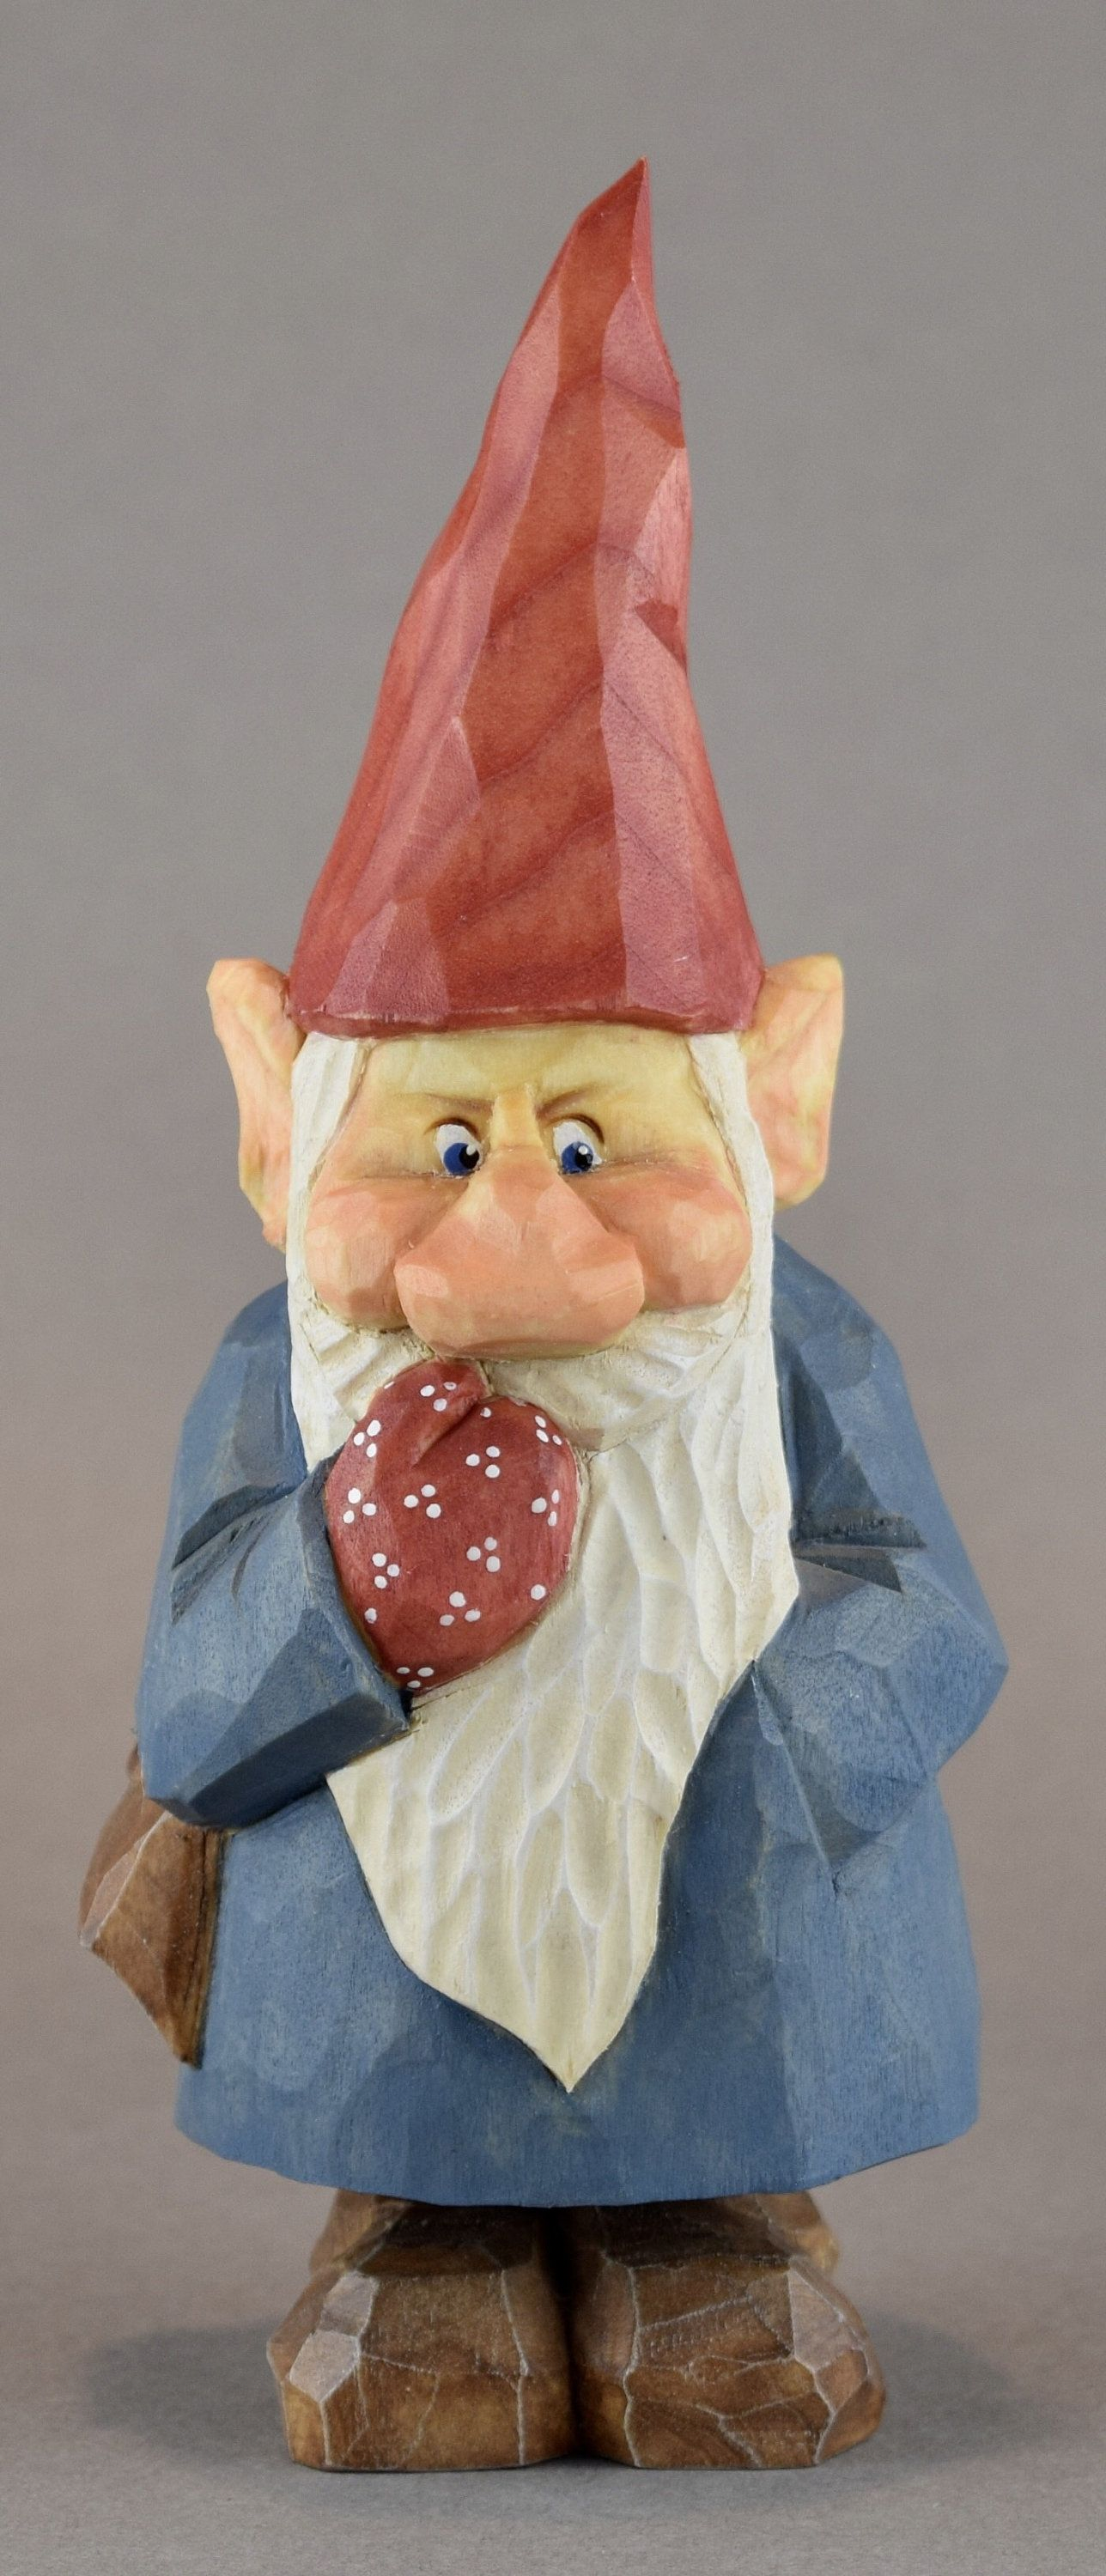 Gnome, elf, Santa, woodcarving, Nisse, Tomte, Christmas #woodcarvingtoo